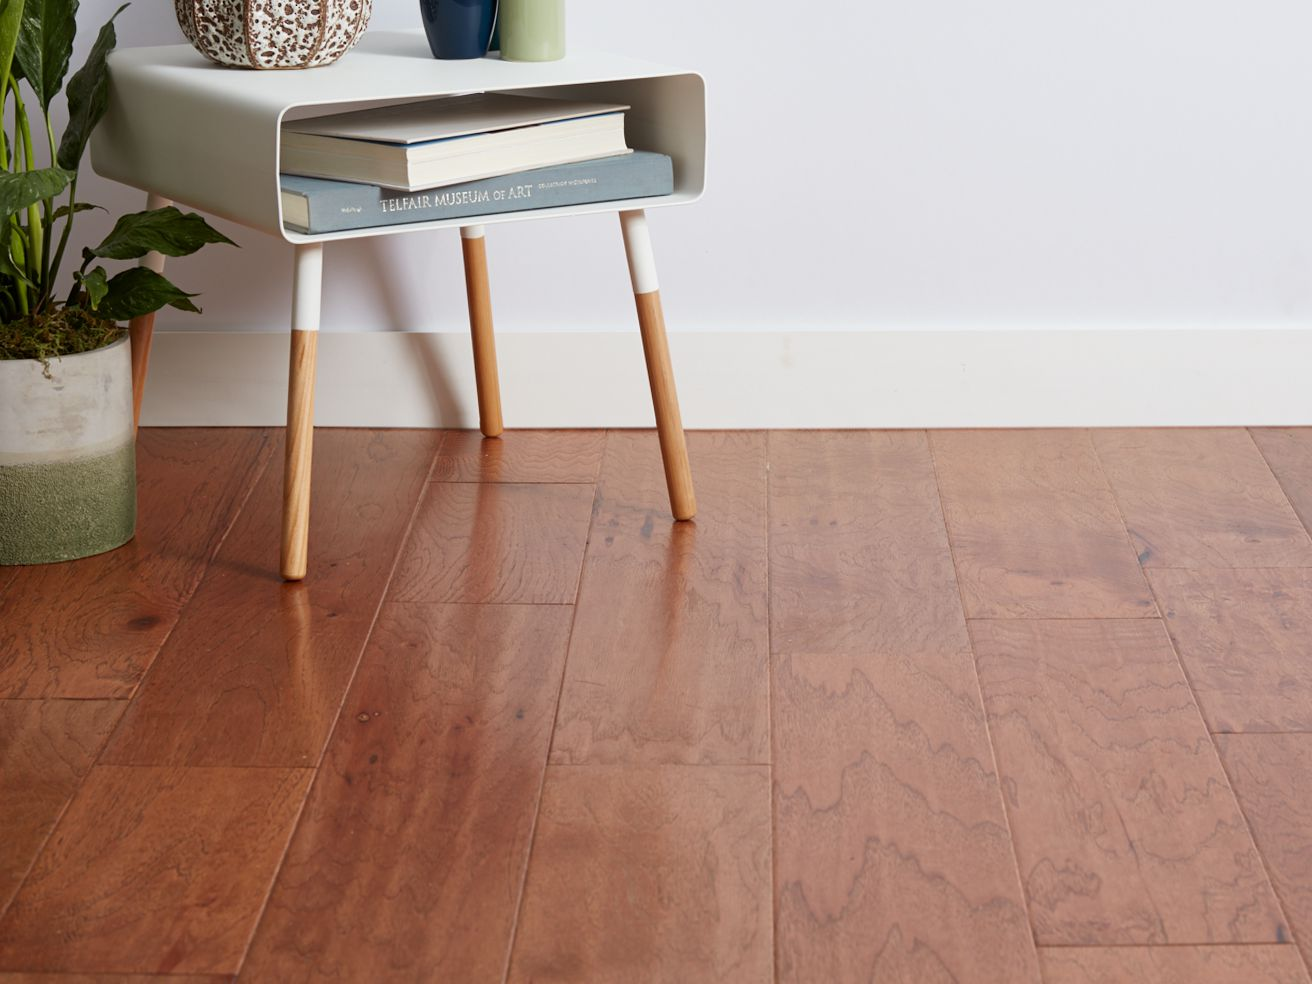 Engineered Wood Floors: What to Know Before You Buy